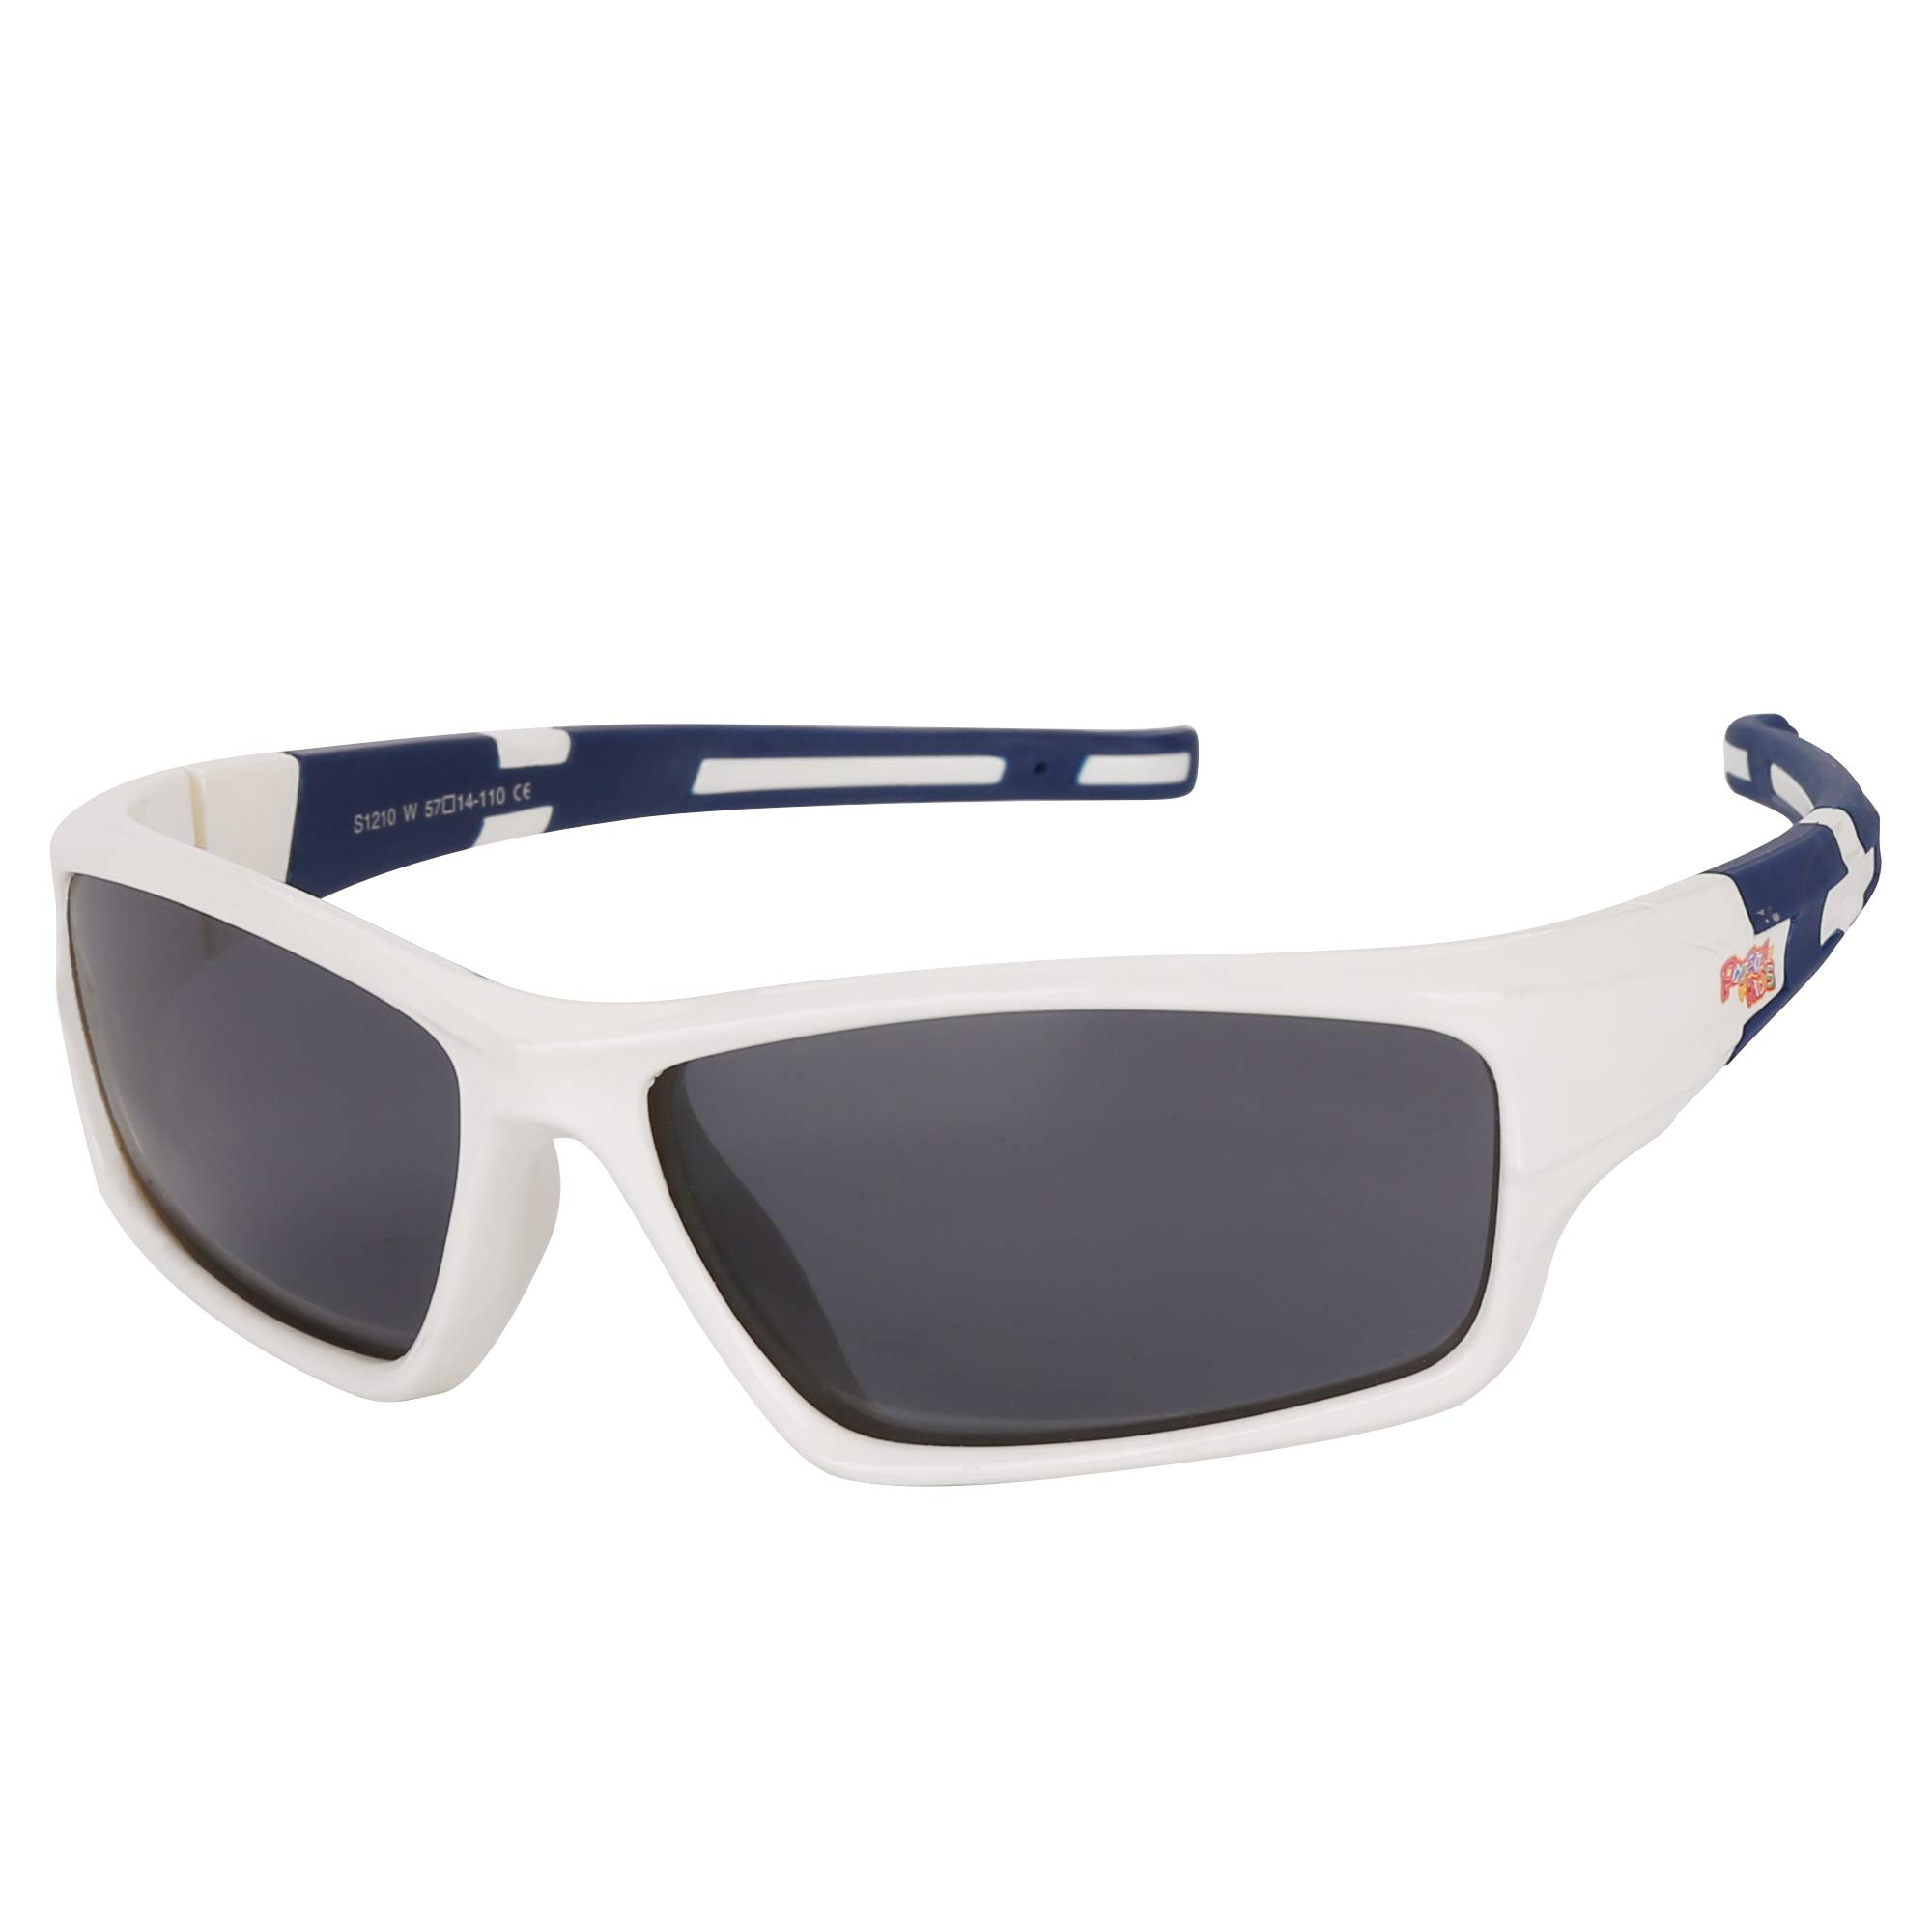 Kids Sports Style Polarized Sunglasses Rubber Flexible Frame For Boys And Girls Children Age 3-10 (white)